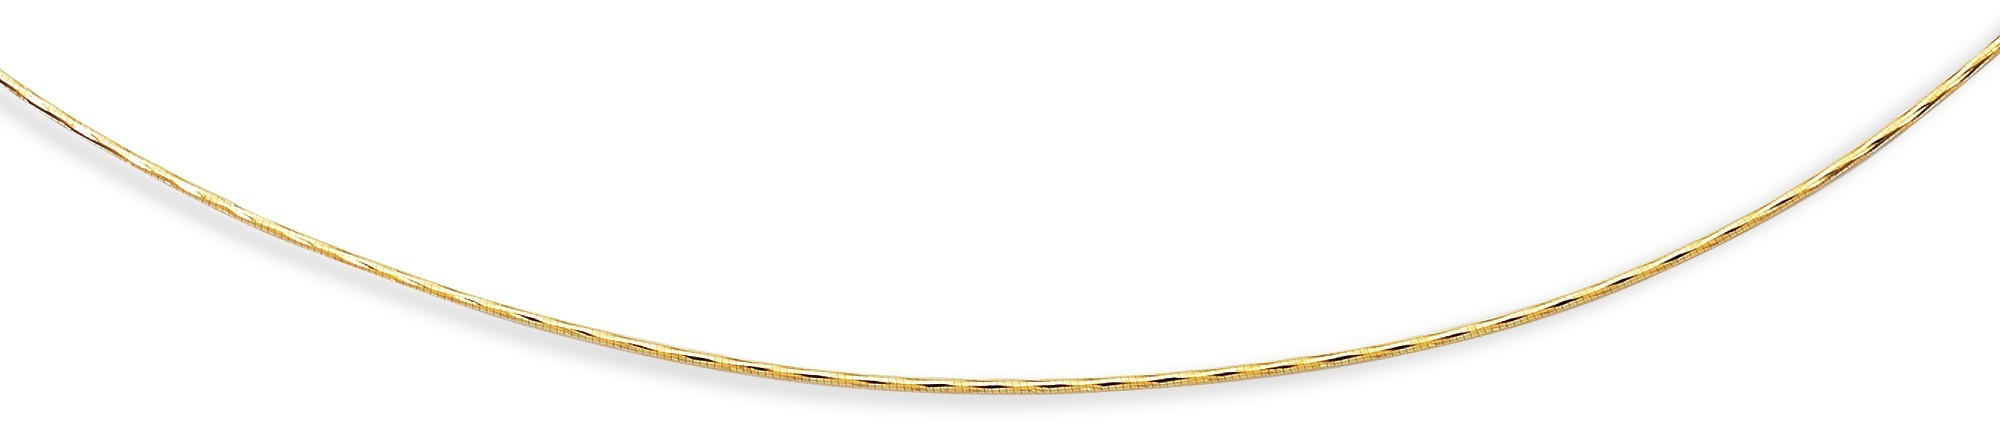 "18"" 14K Yellow Gold 1.5mm (0.06"") Diamond Cut Round Omega Necklace w/ Screw Off Clasp"